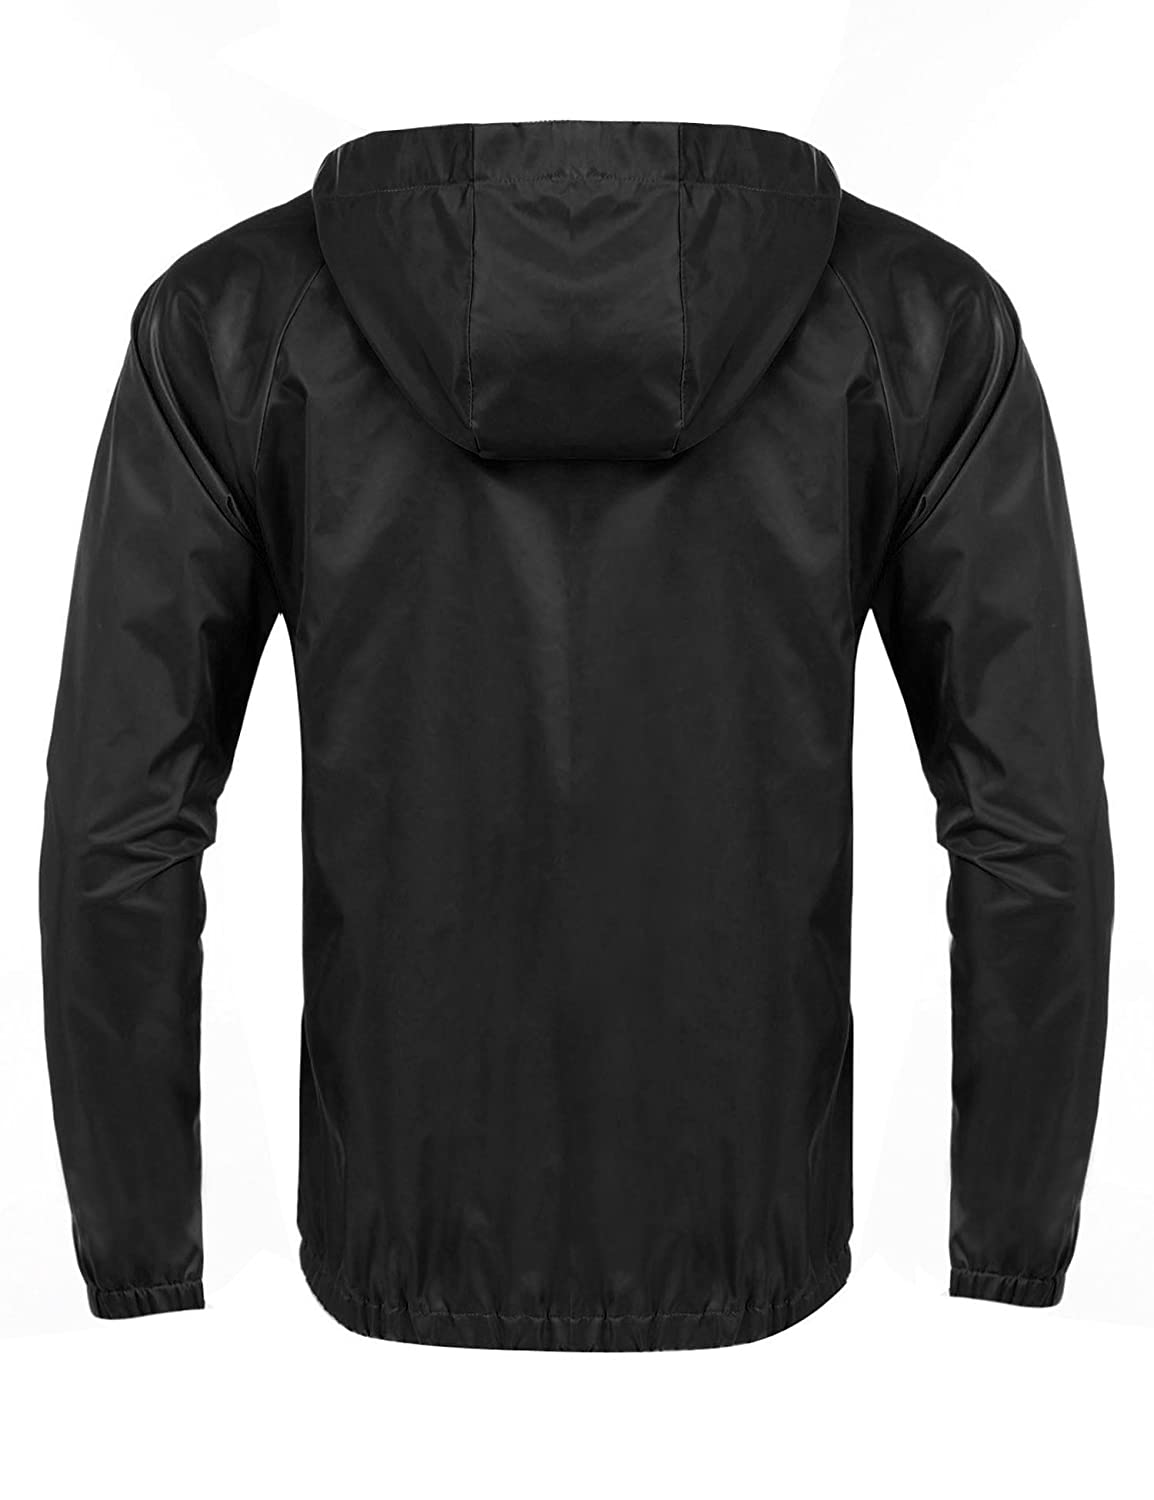 COOFANDY Mens Packable Rain Jacket Classic Cycling Waterproof Raincoat